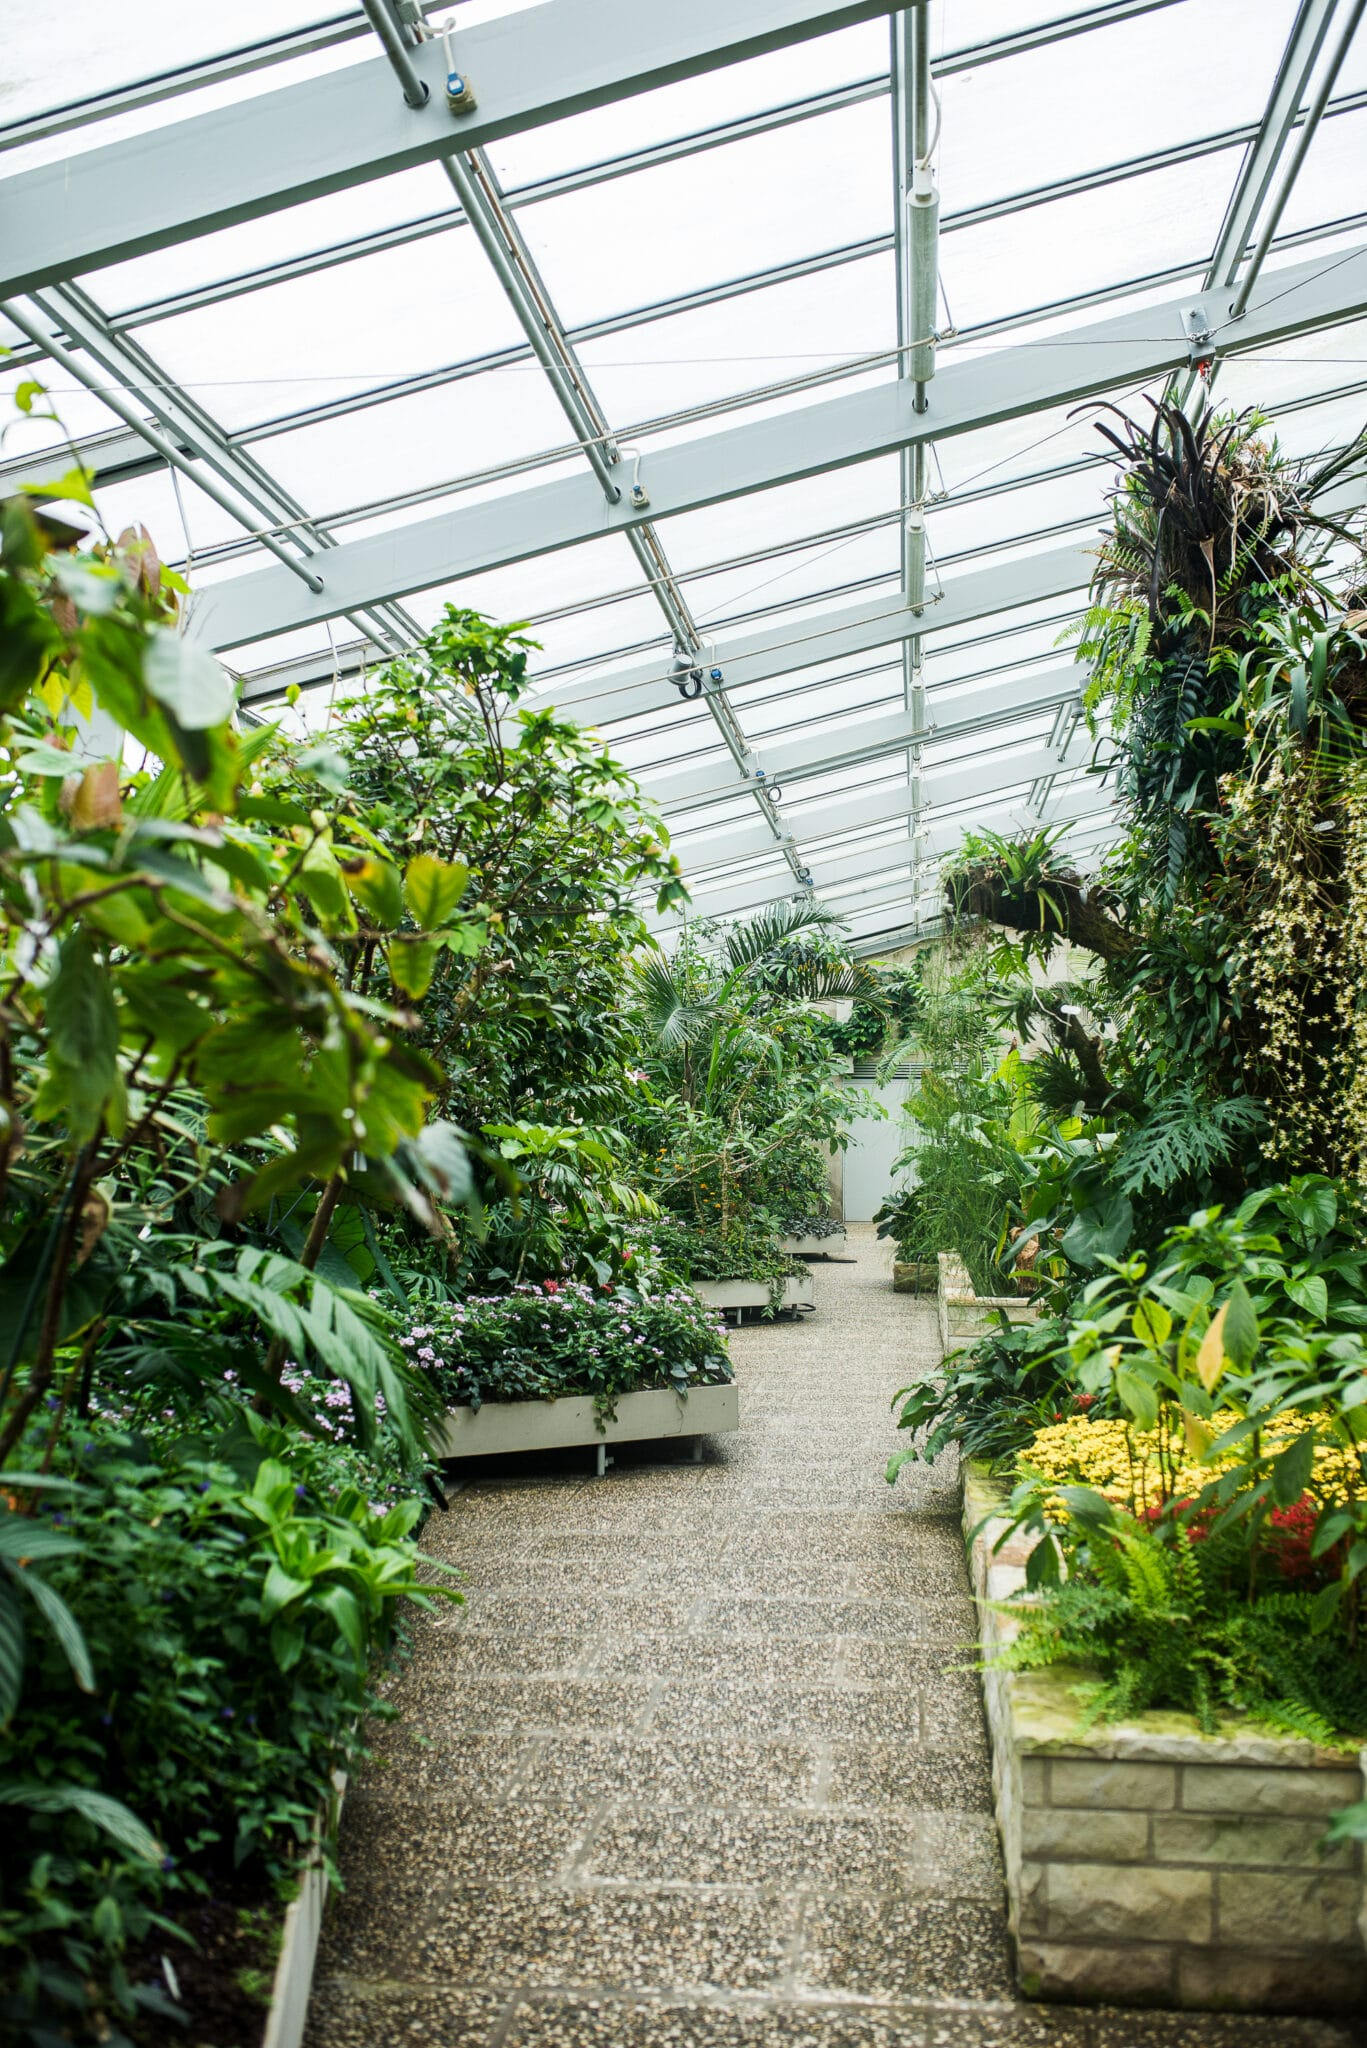 A lush indoor plant nursery where you can find the best plants to grow indoors.